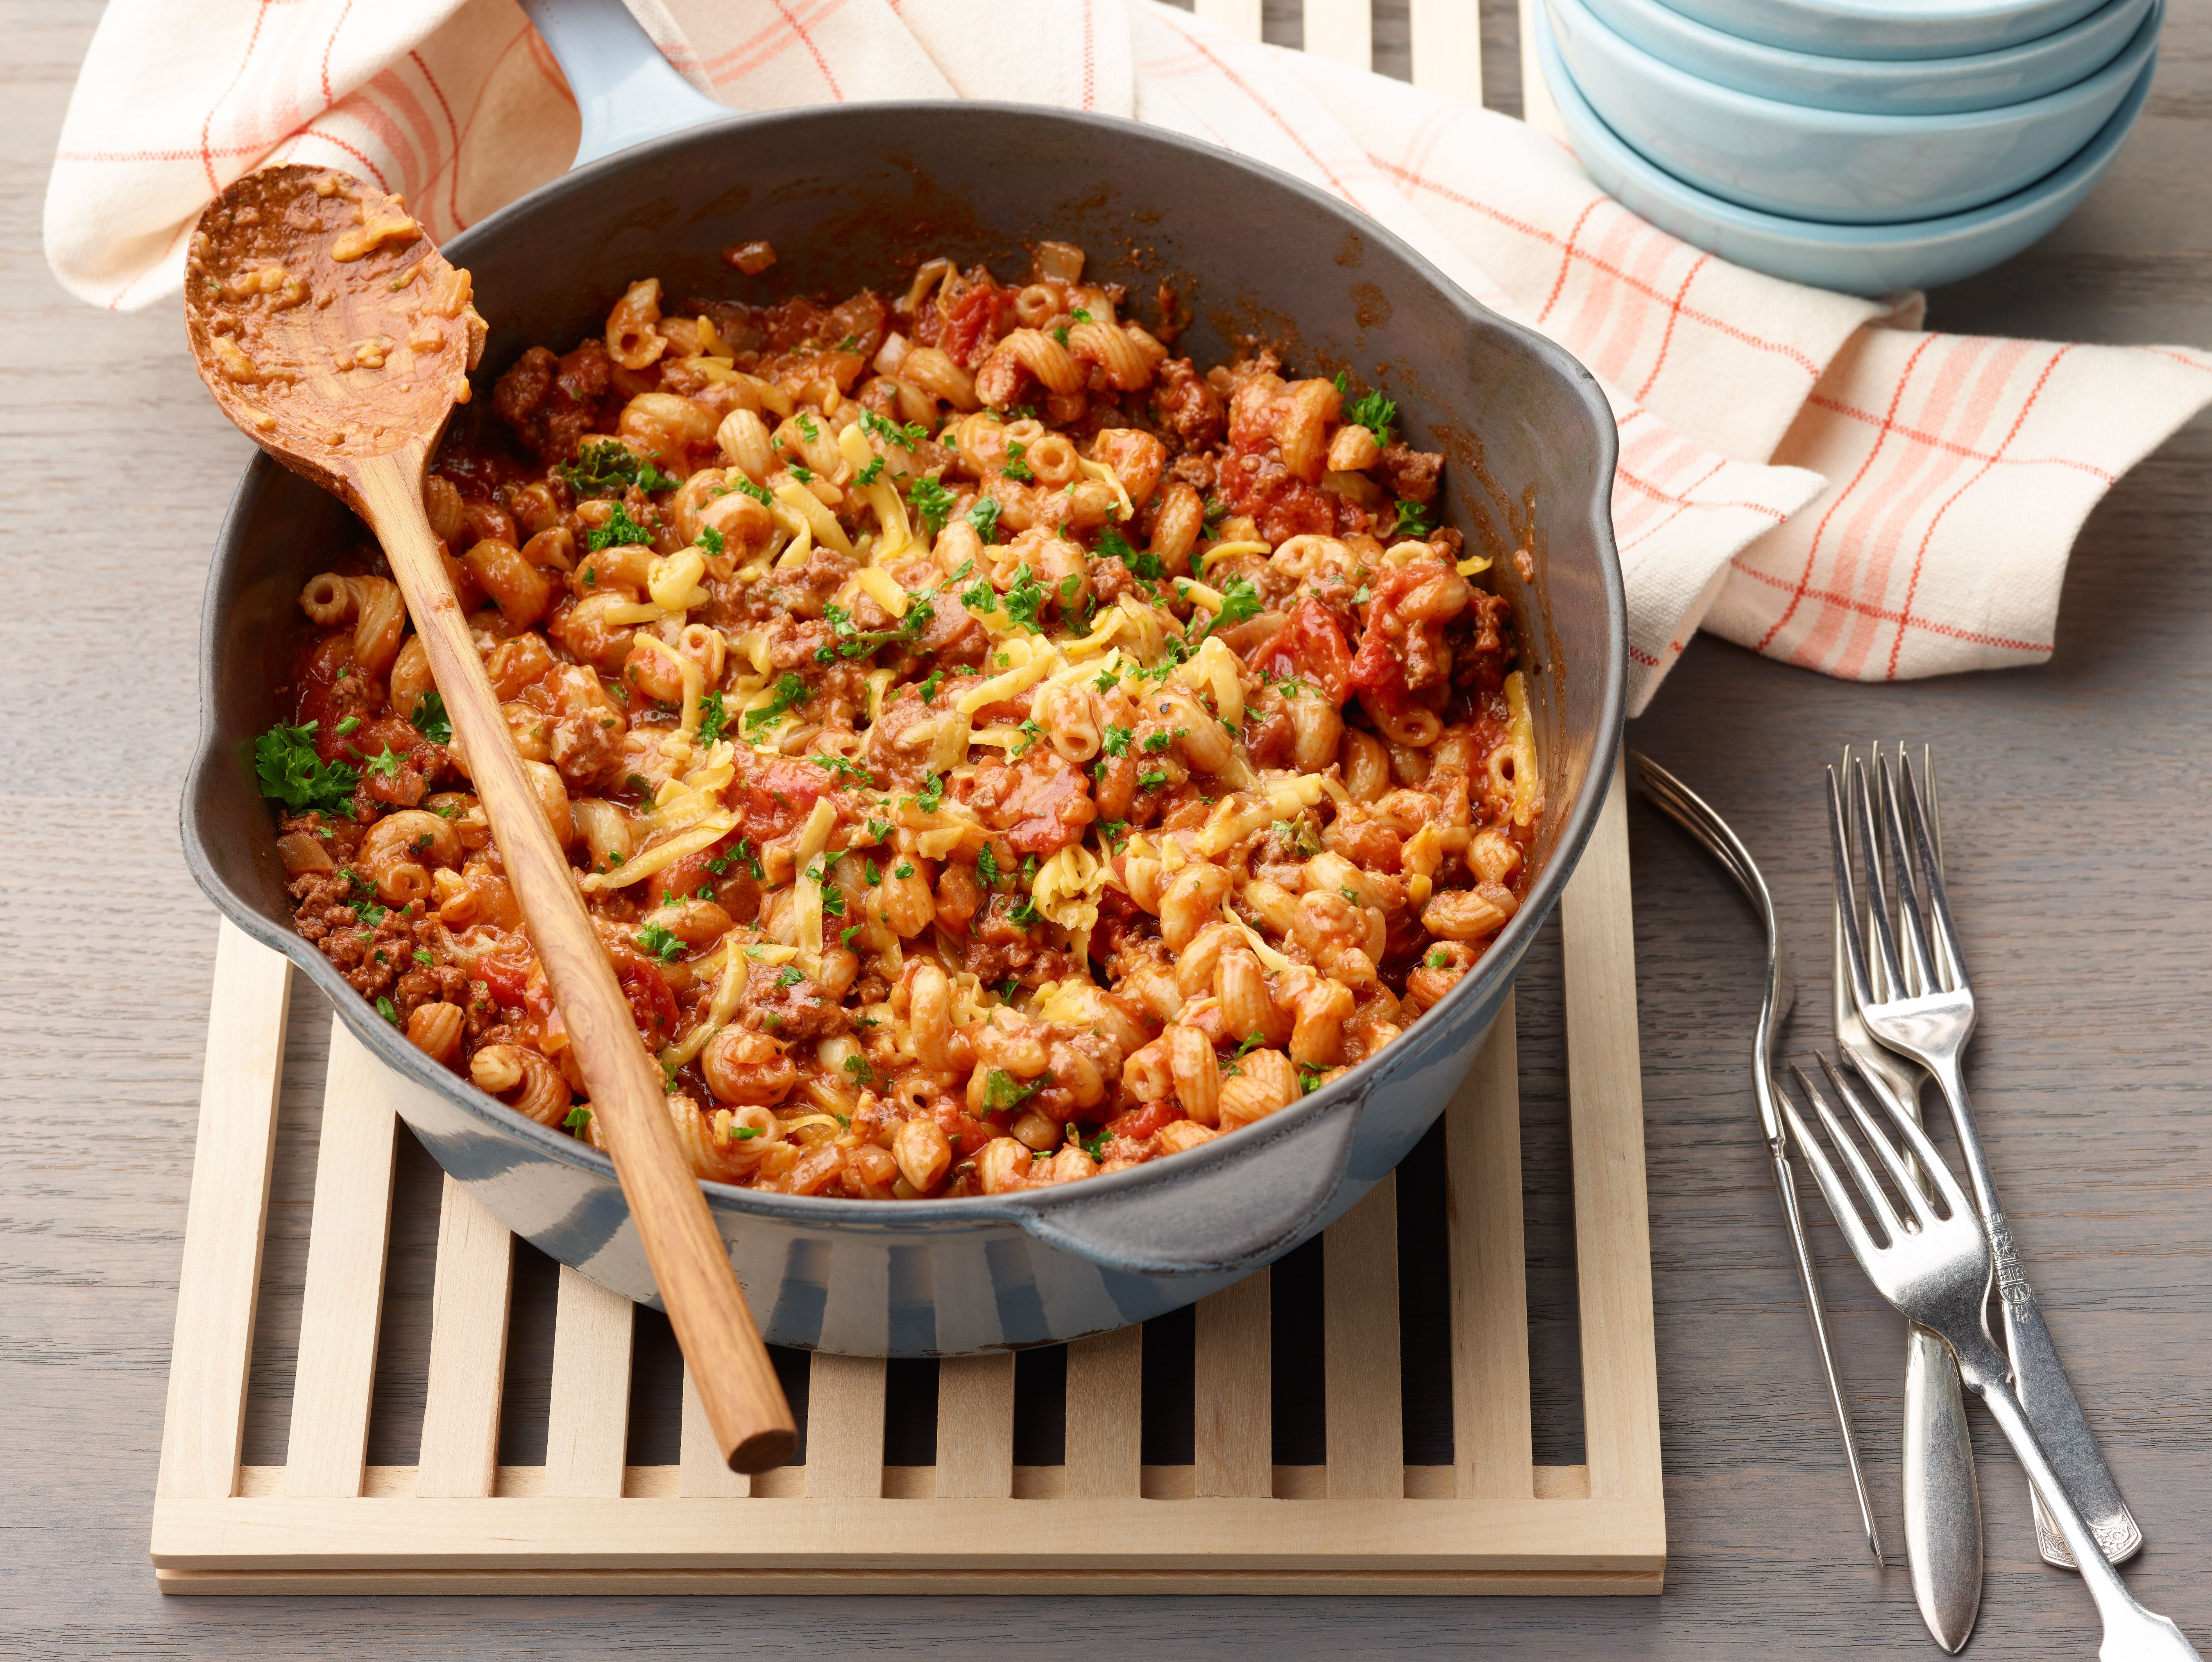 Goulash Recipe In 2020 Food Network Recipes One Pot Meals Pasta Dishes